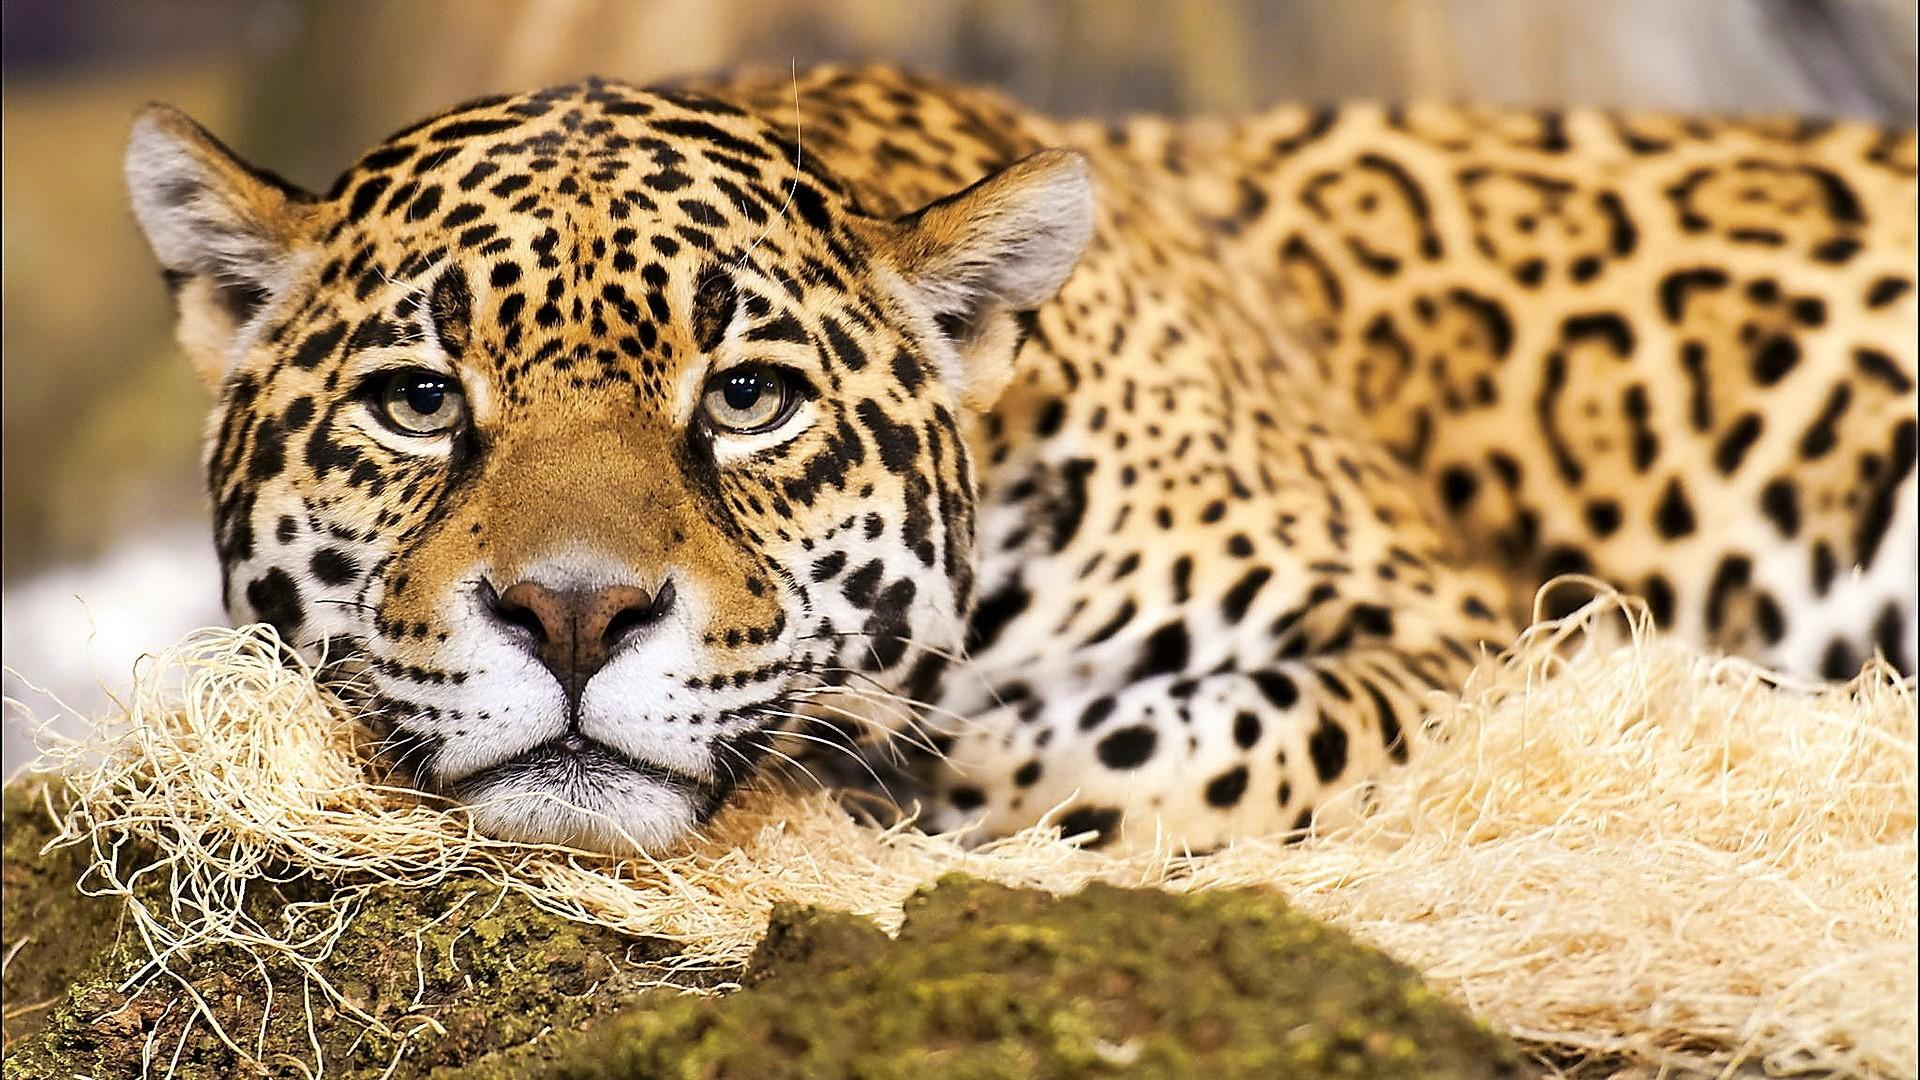 Jaguar The Big Cat Wallpaper Px Free Download 1920x1080px